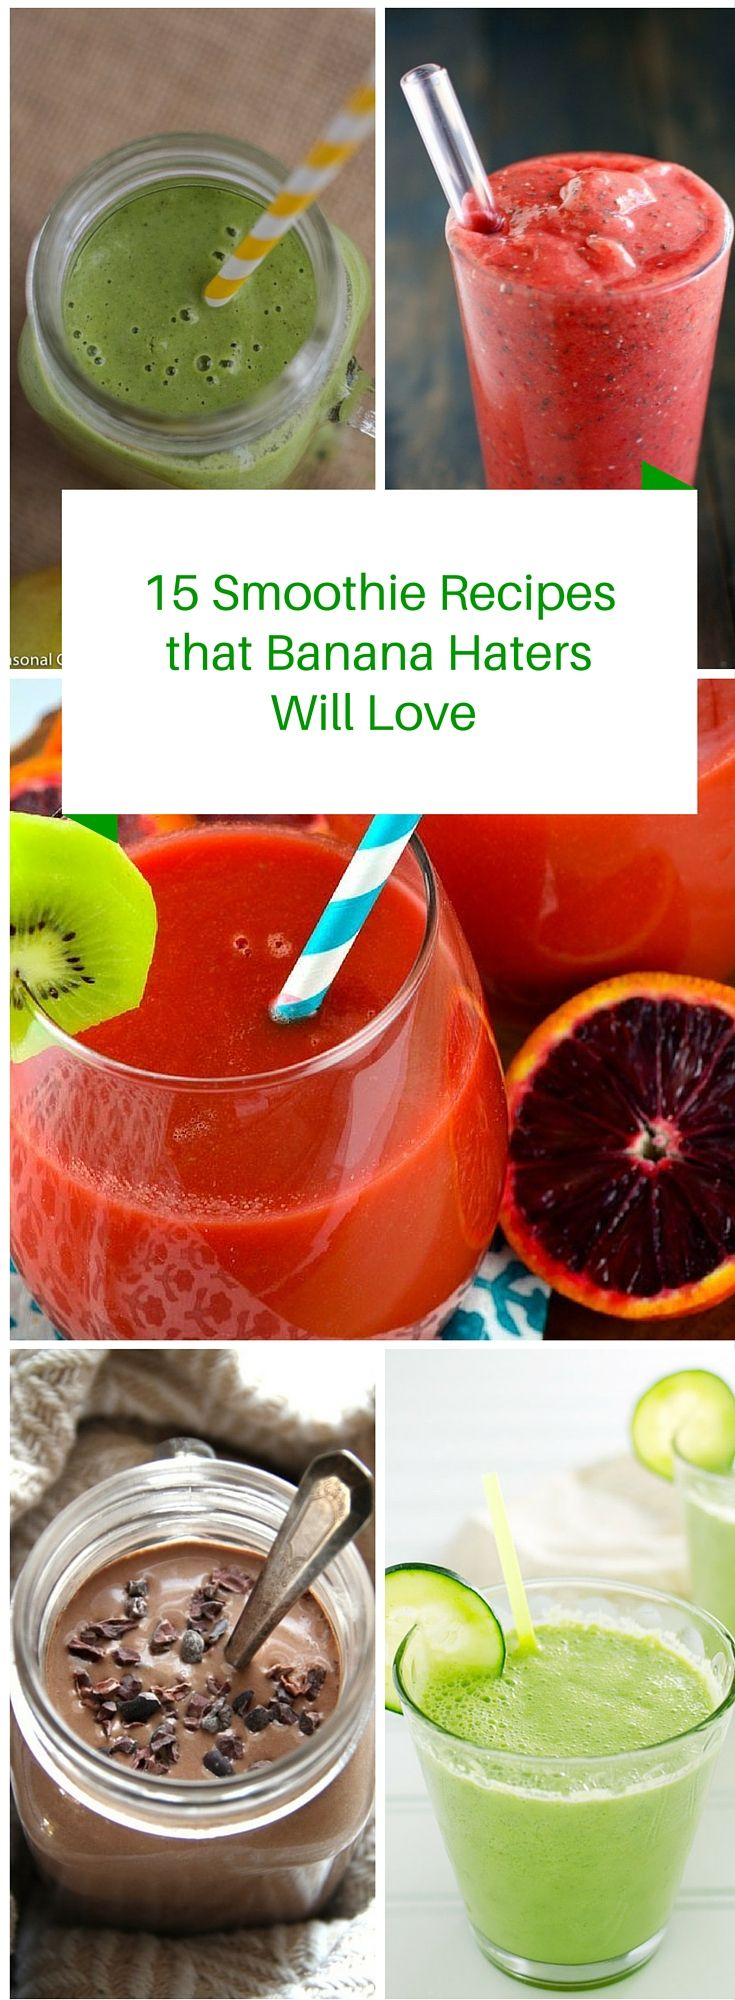 15 Smoothie Recipes That Banana Haters Will Love